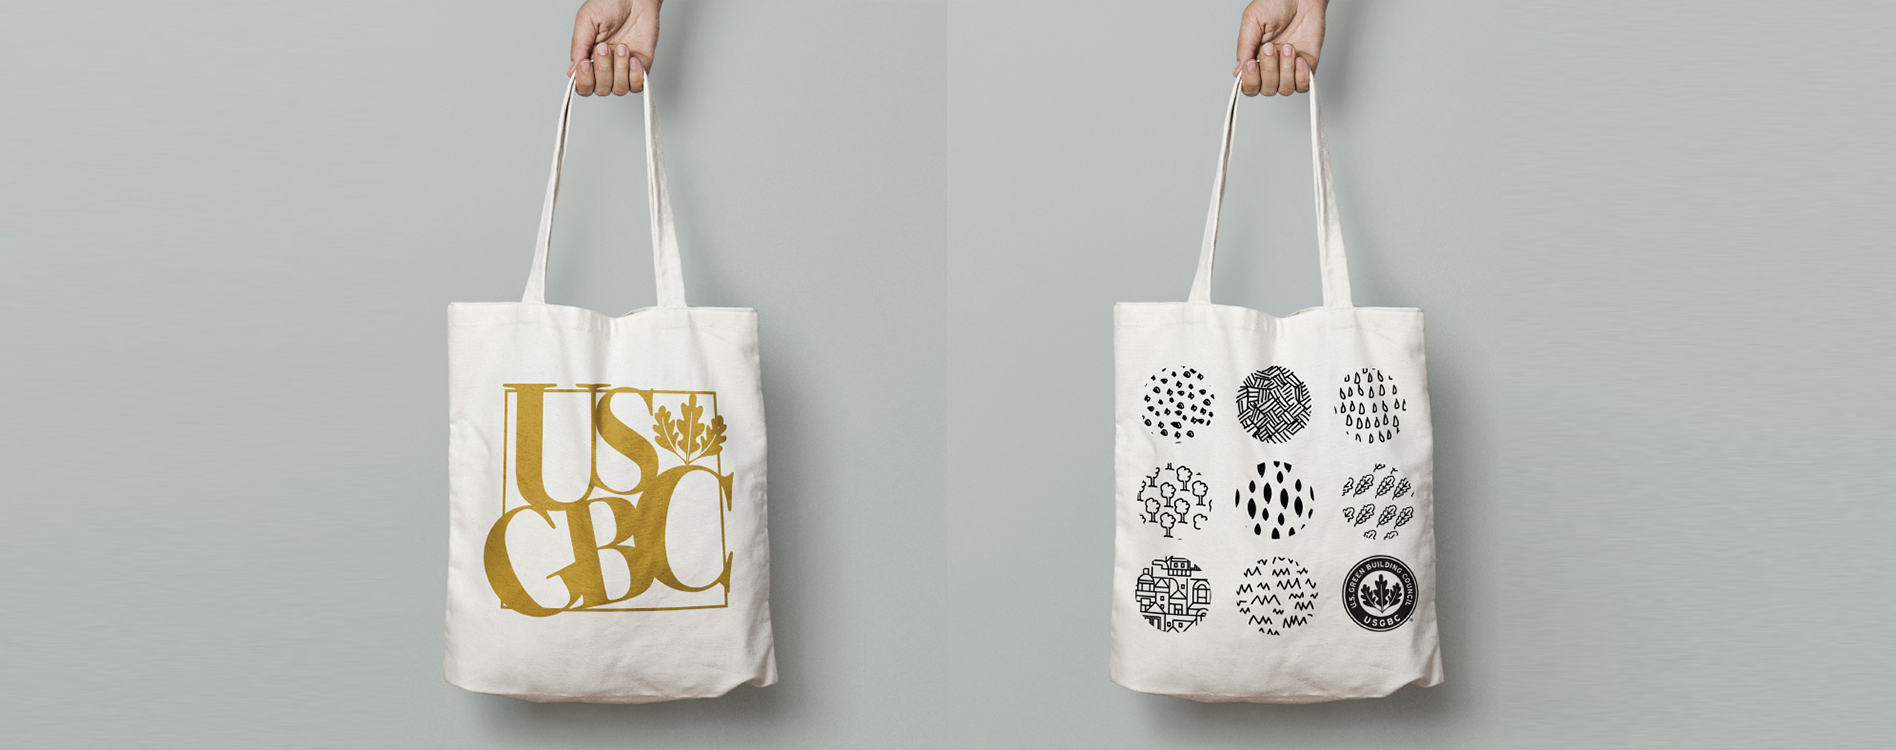 Branded tote bags as a fun holiday party giveaway